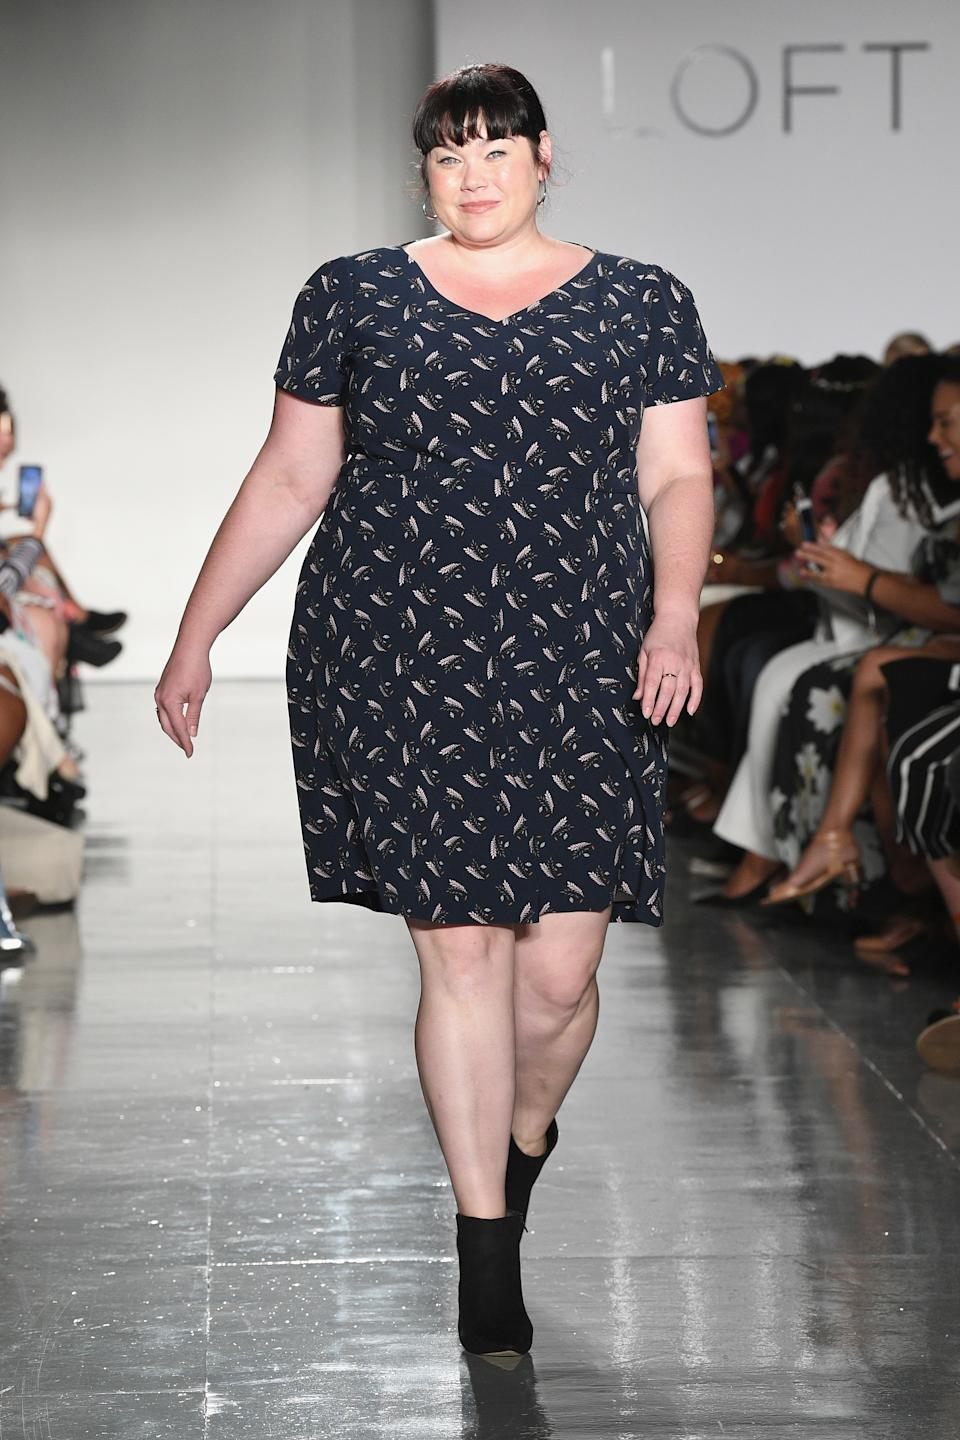 Amber McCulloch walks the runway at the Loft Fashion Show during theCURVYcon Powered By Dia&Co (Getty Images).